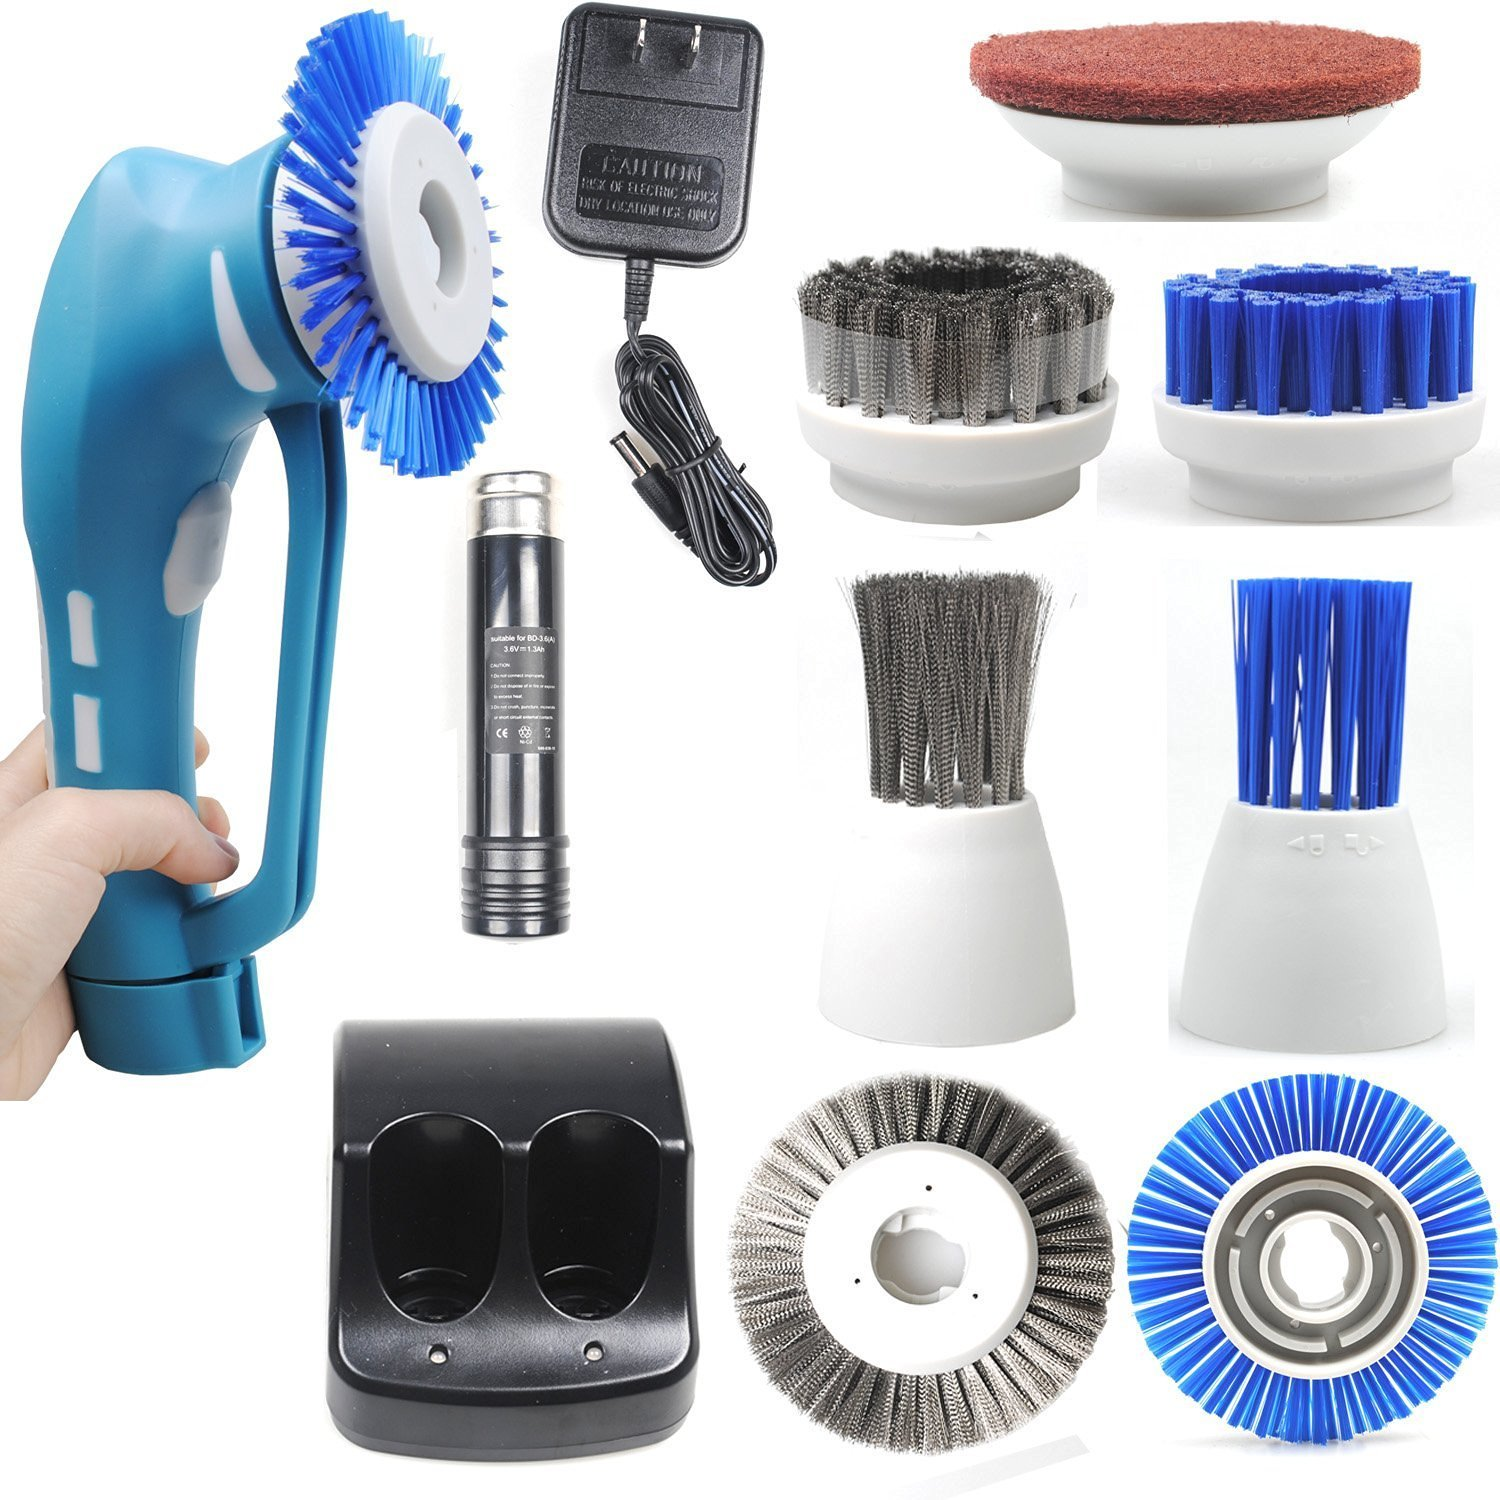 CUH Cordless Power Scrubber with Rechargeable Battery for Bathroom ...